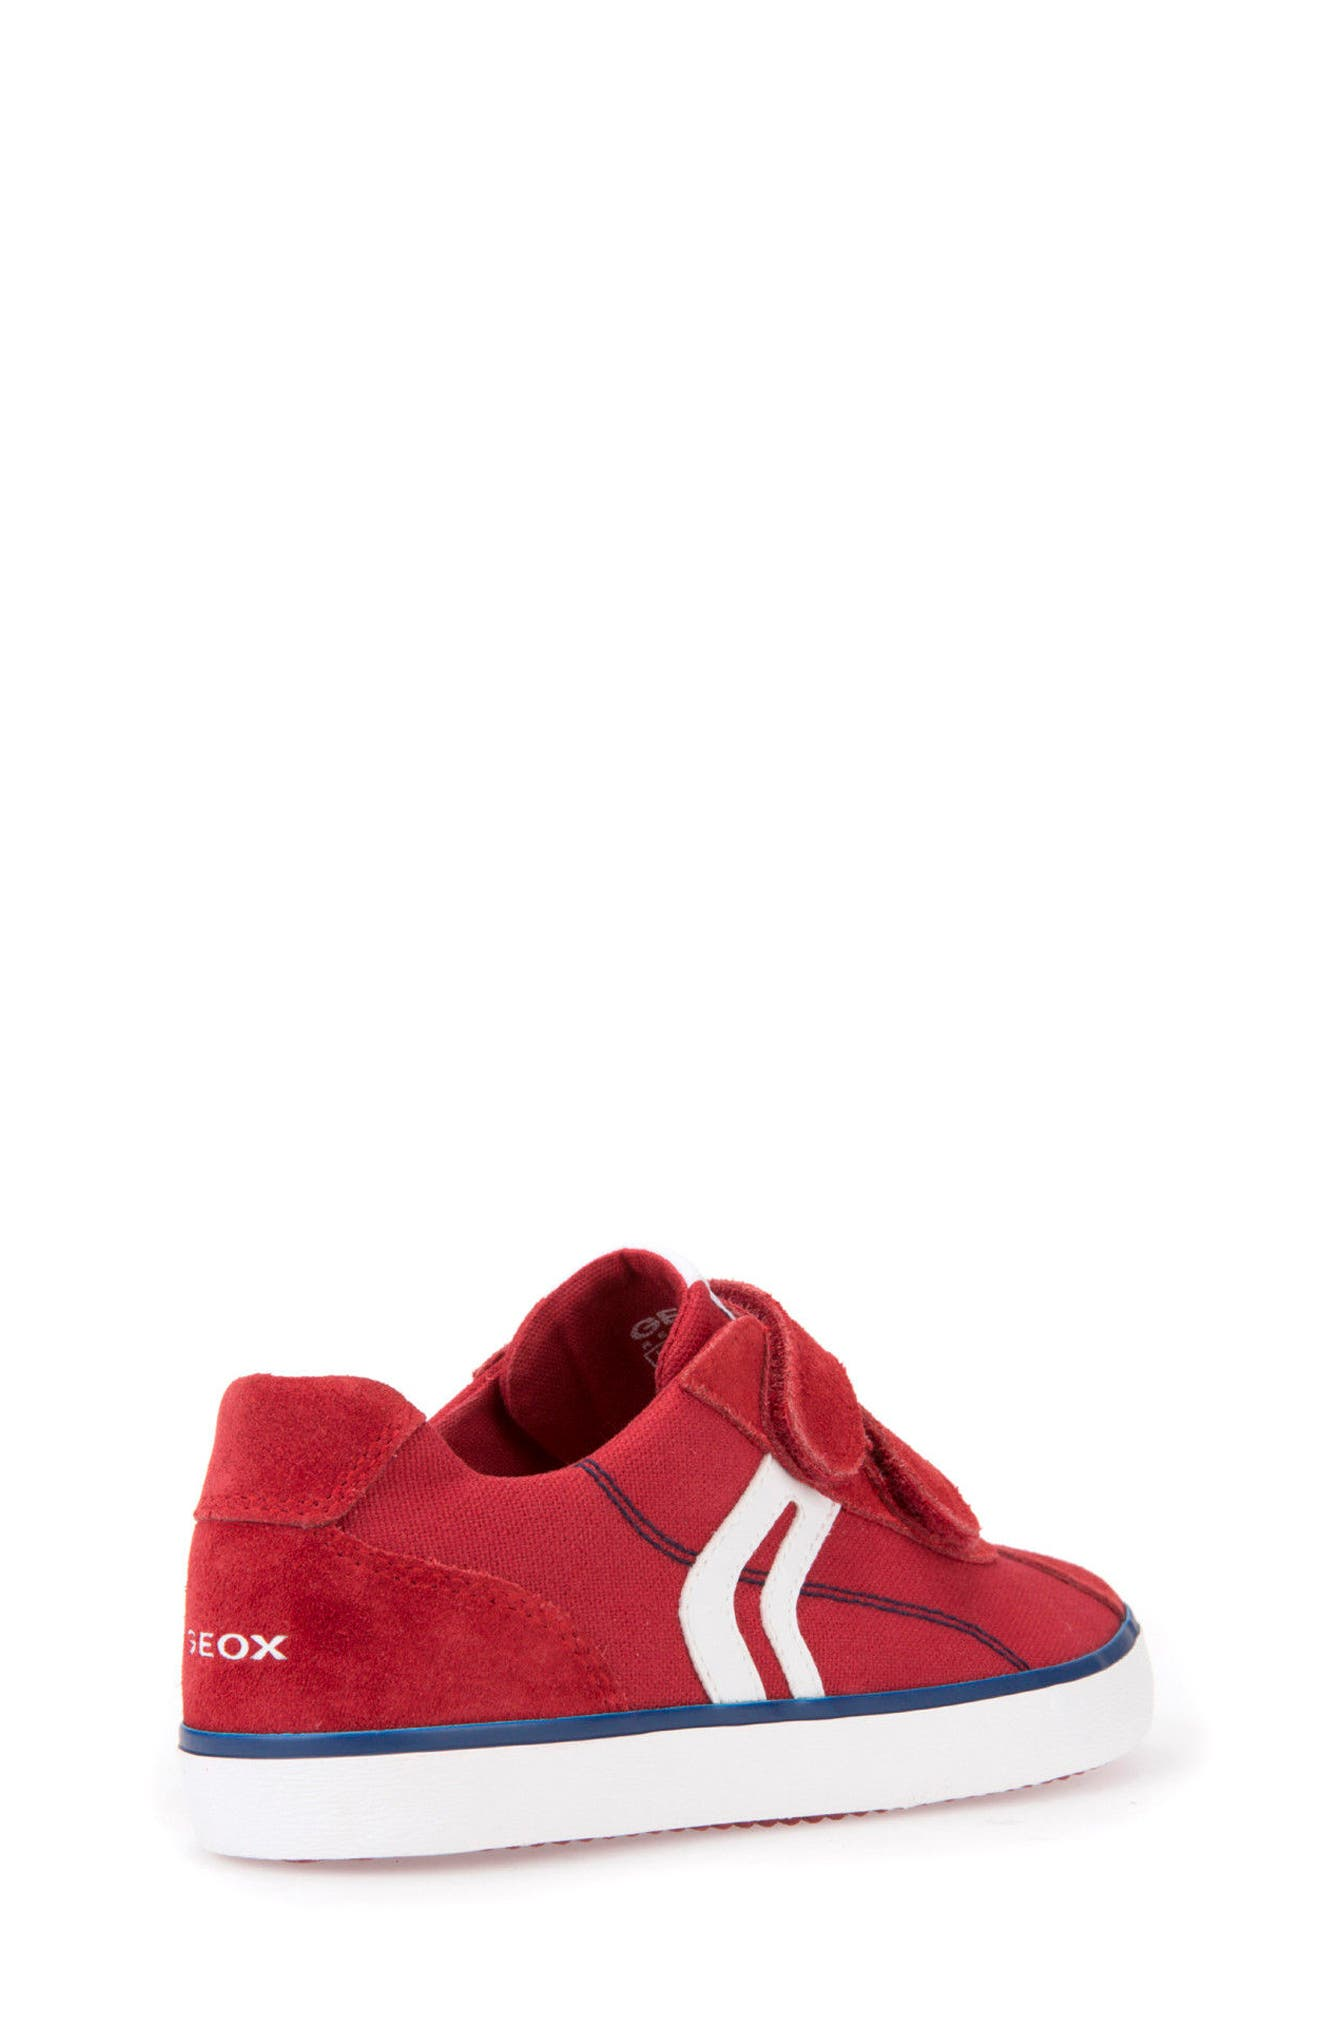 Kilwi Low Top Sneaker,                             Alternate thumbnail 2, color,                             Dark Red/ Navy